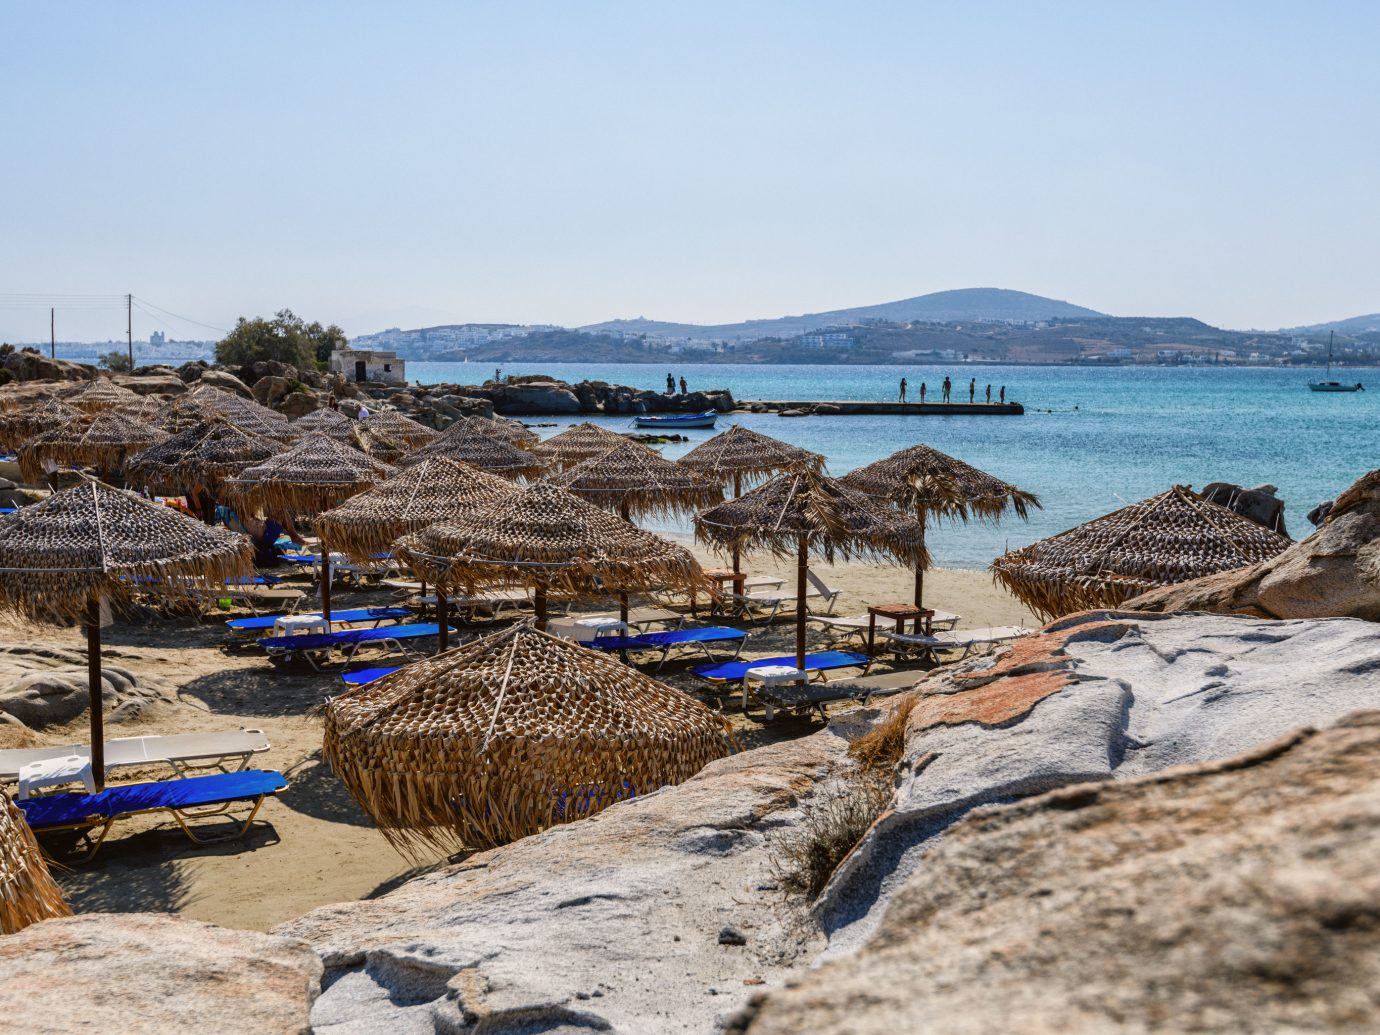 Beach in Naoussa, Greece